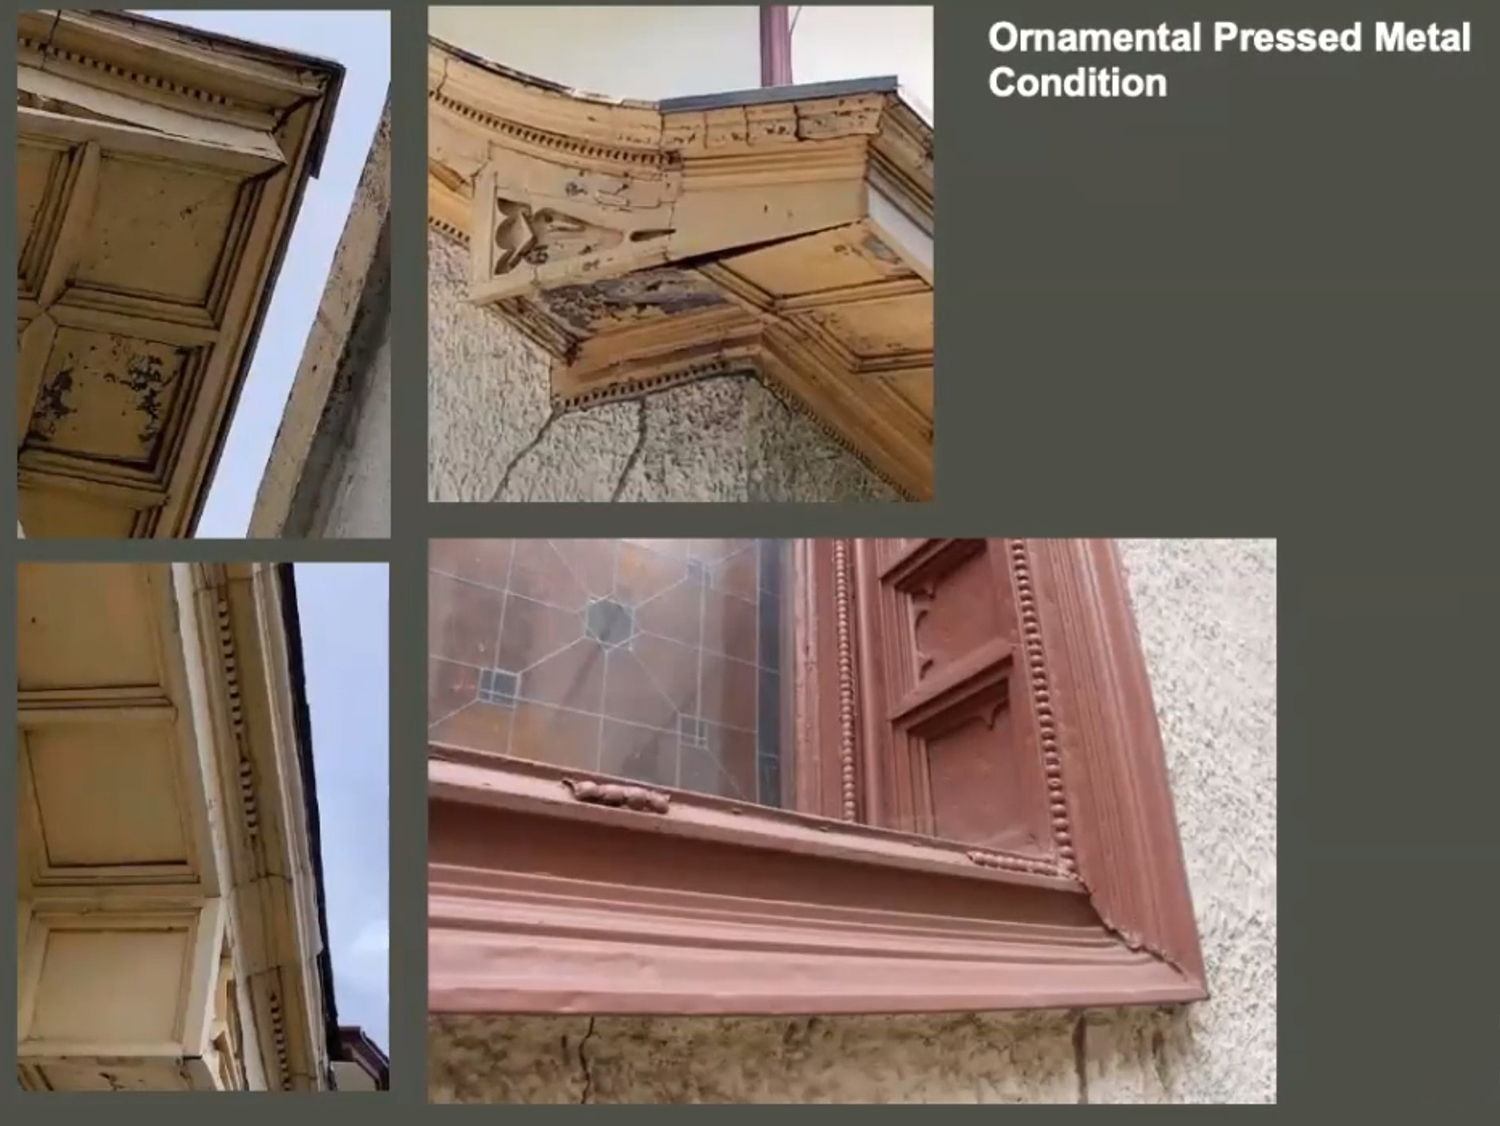 Metal Condition on Holy Trinity Orthodox Cathedral and Rectory. Images by Landmarks Commission